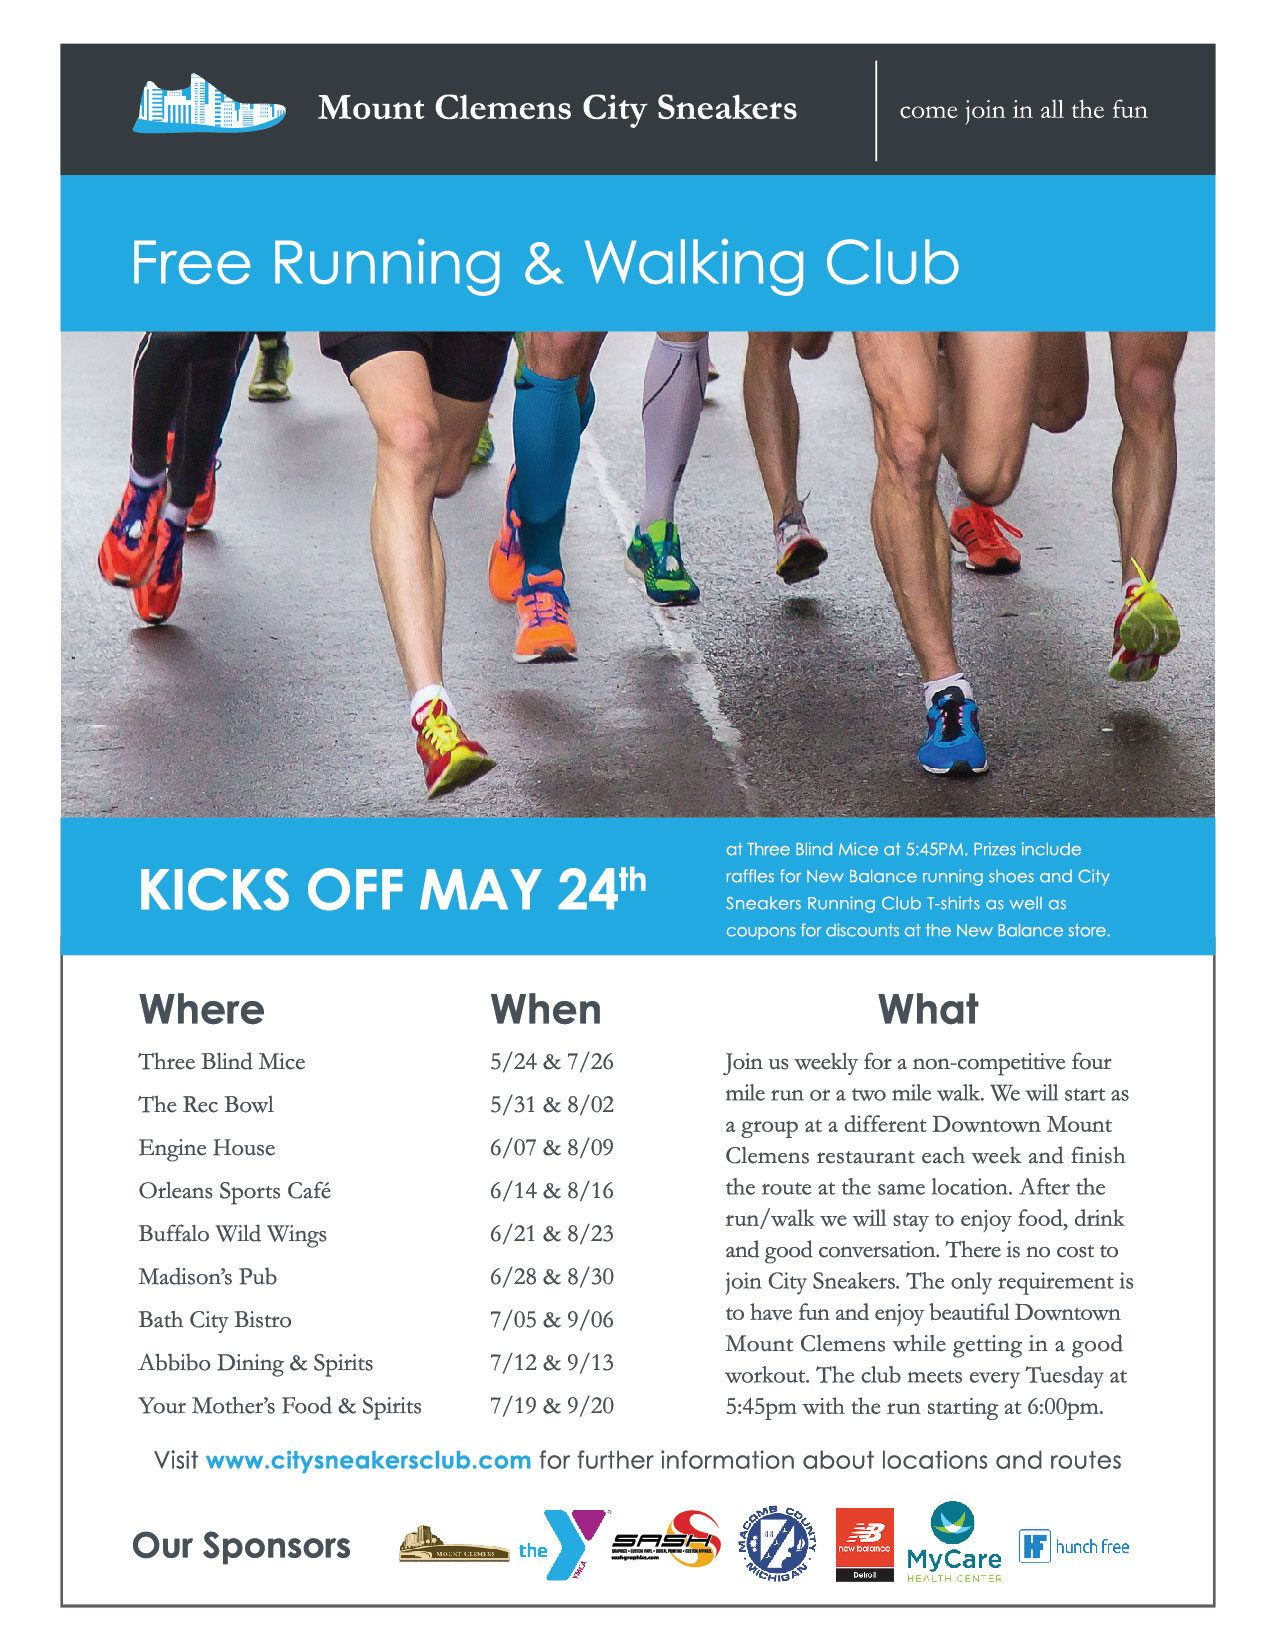 Join the Free Running and Walking Club hosted in downtown